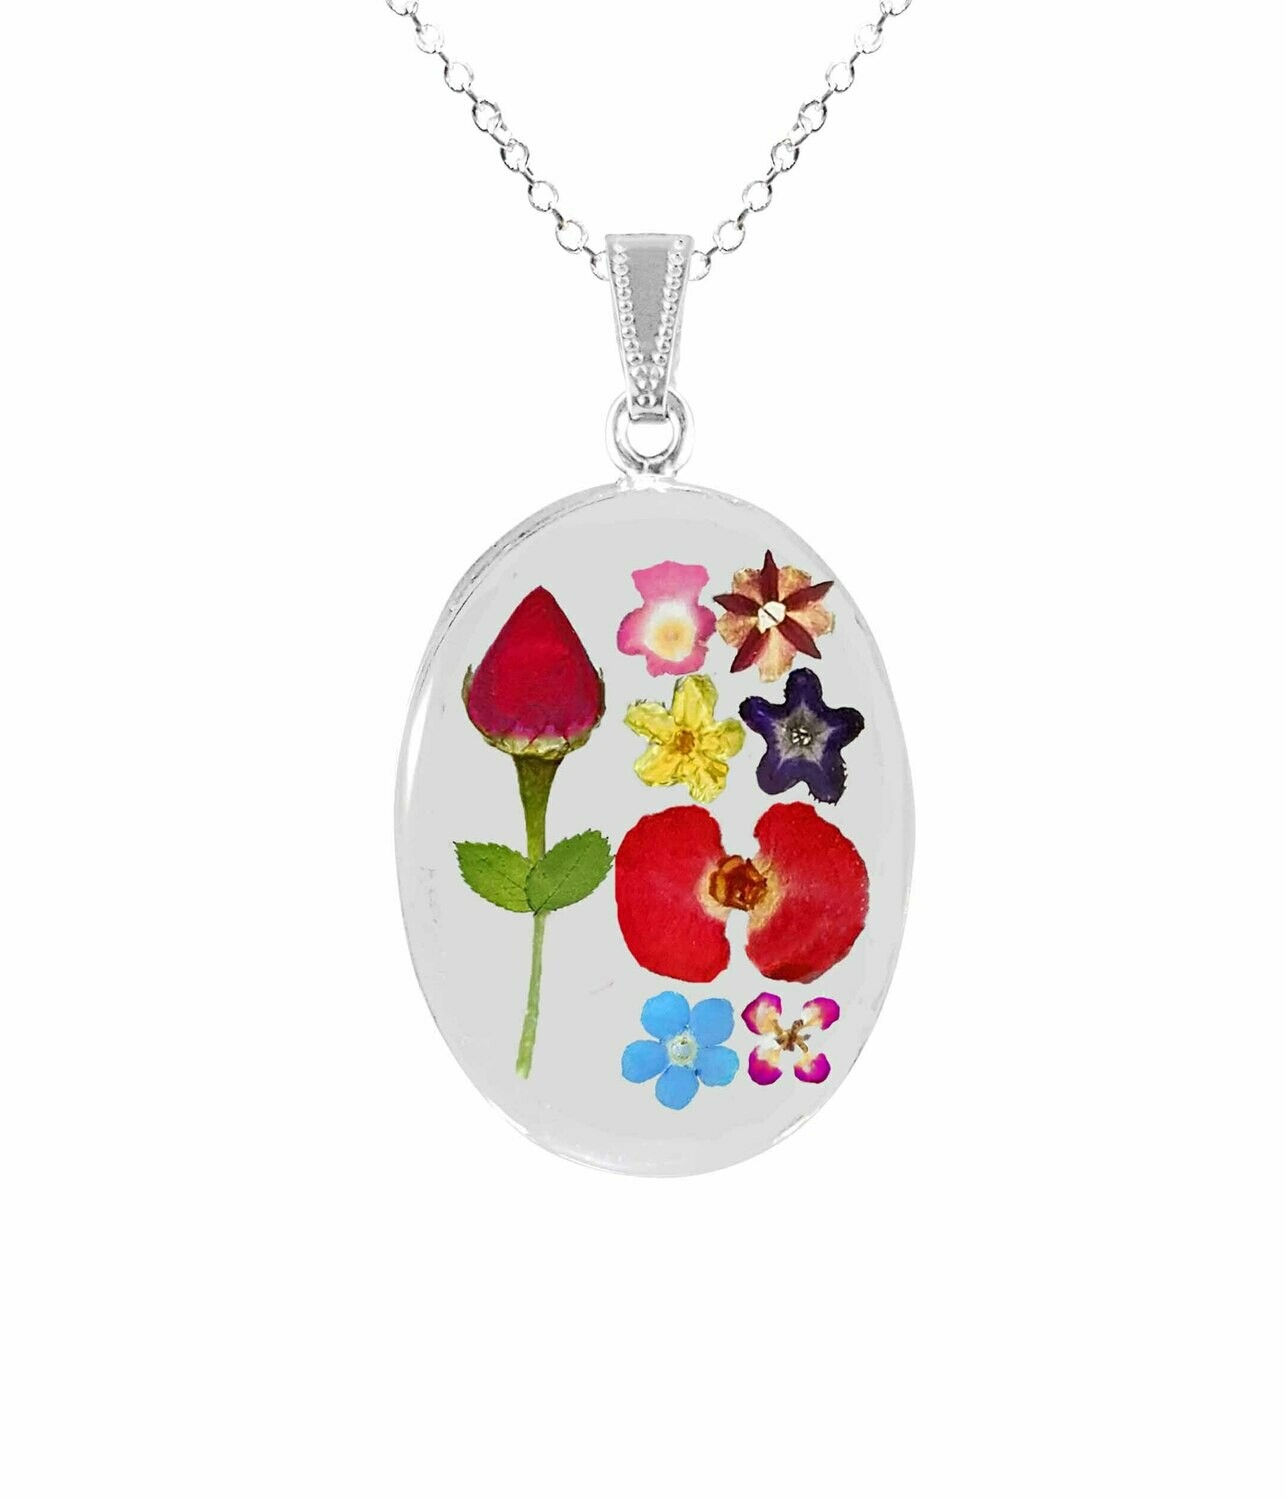 Rose & Mixed Flowers Necklace, Medium Oval, Transparent